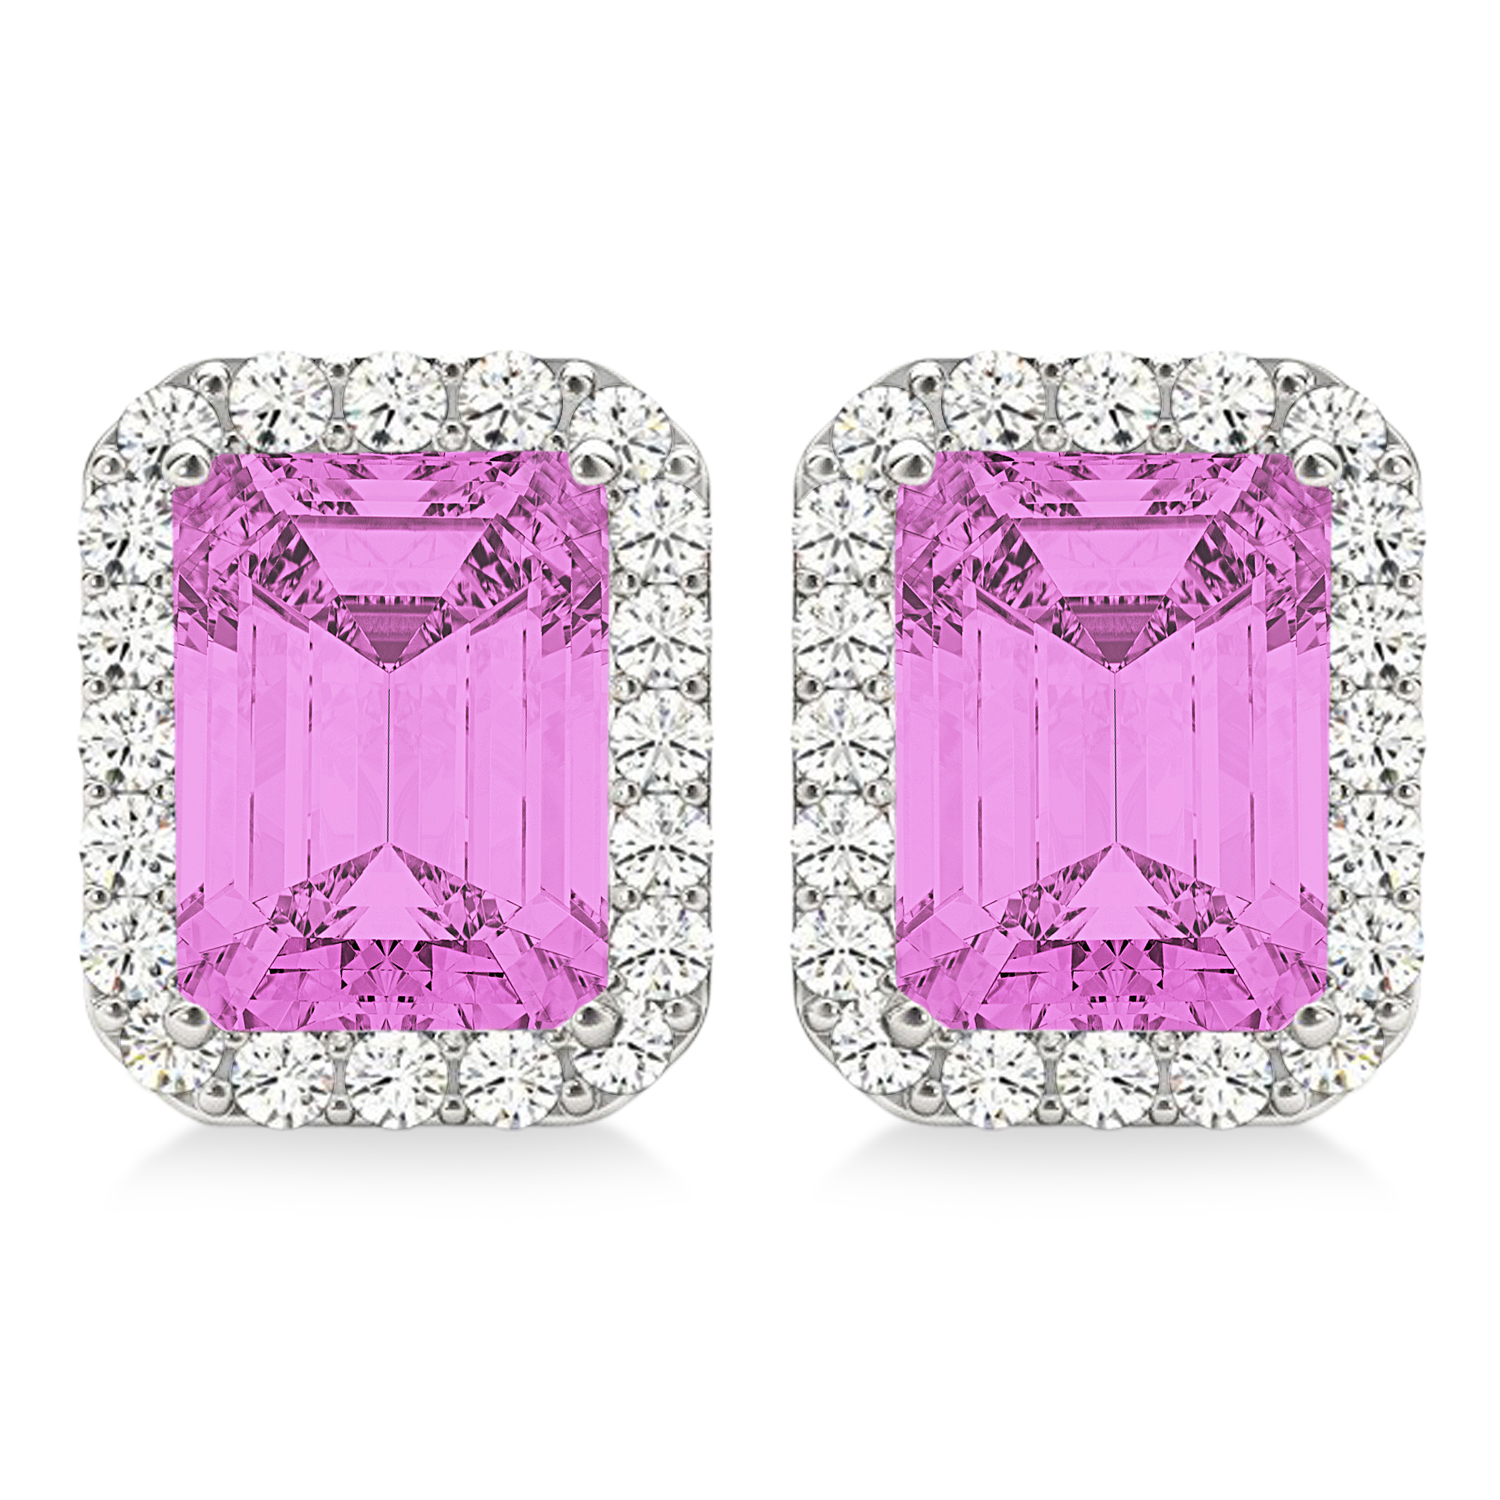 Emerald Cut Pink Sapphire & Diamond Halo Earrings 14k White Gold (2.60ct)